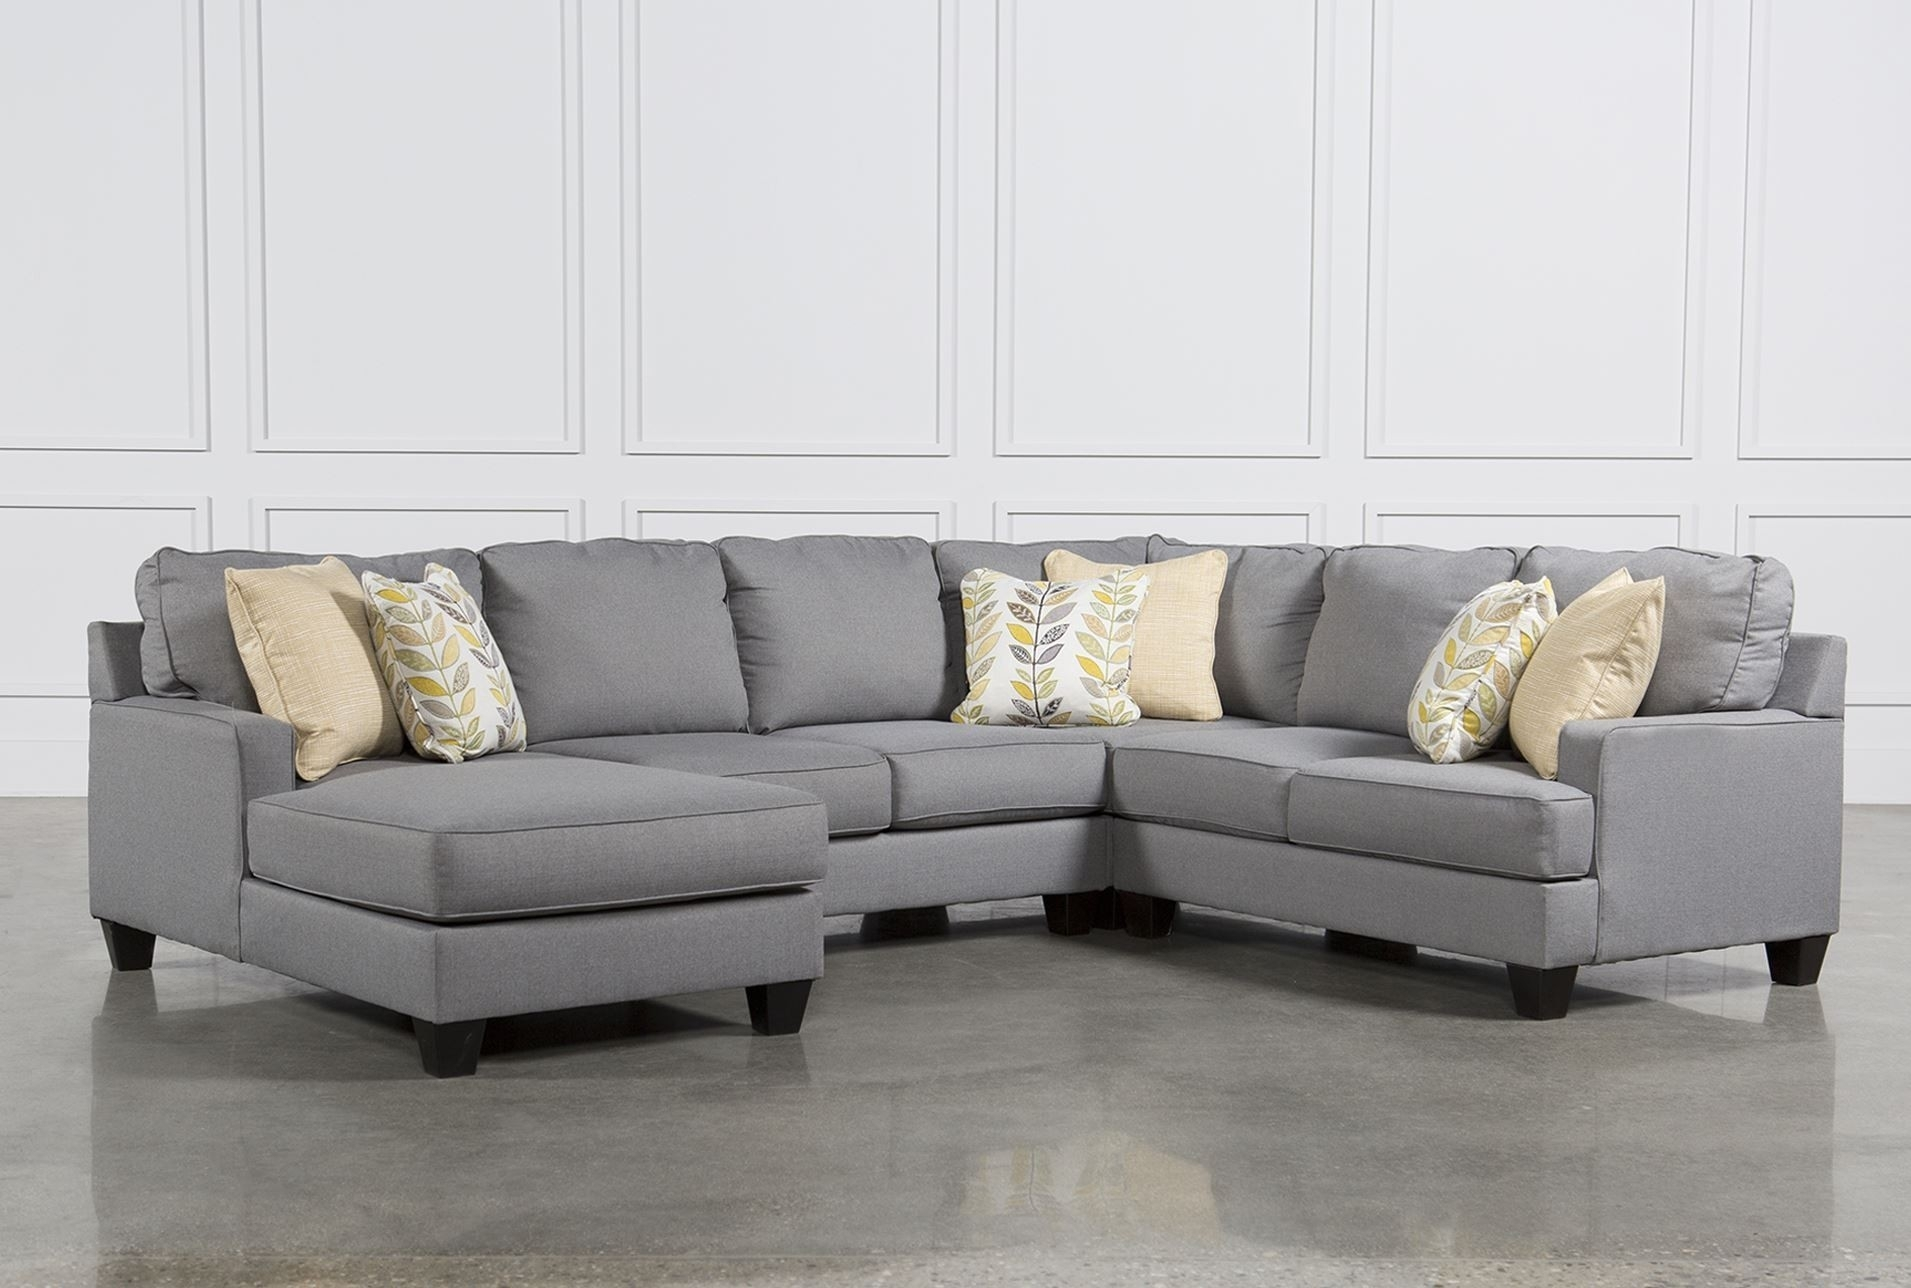 Living Spaces Sectional Sofas – Implantologiabogota (Image 14 of 25)